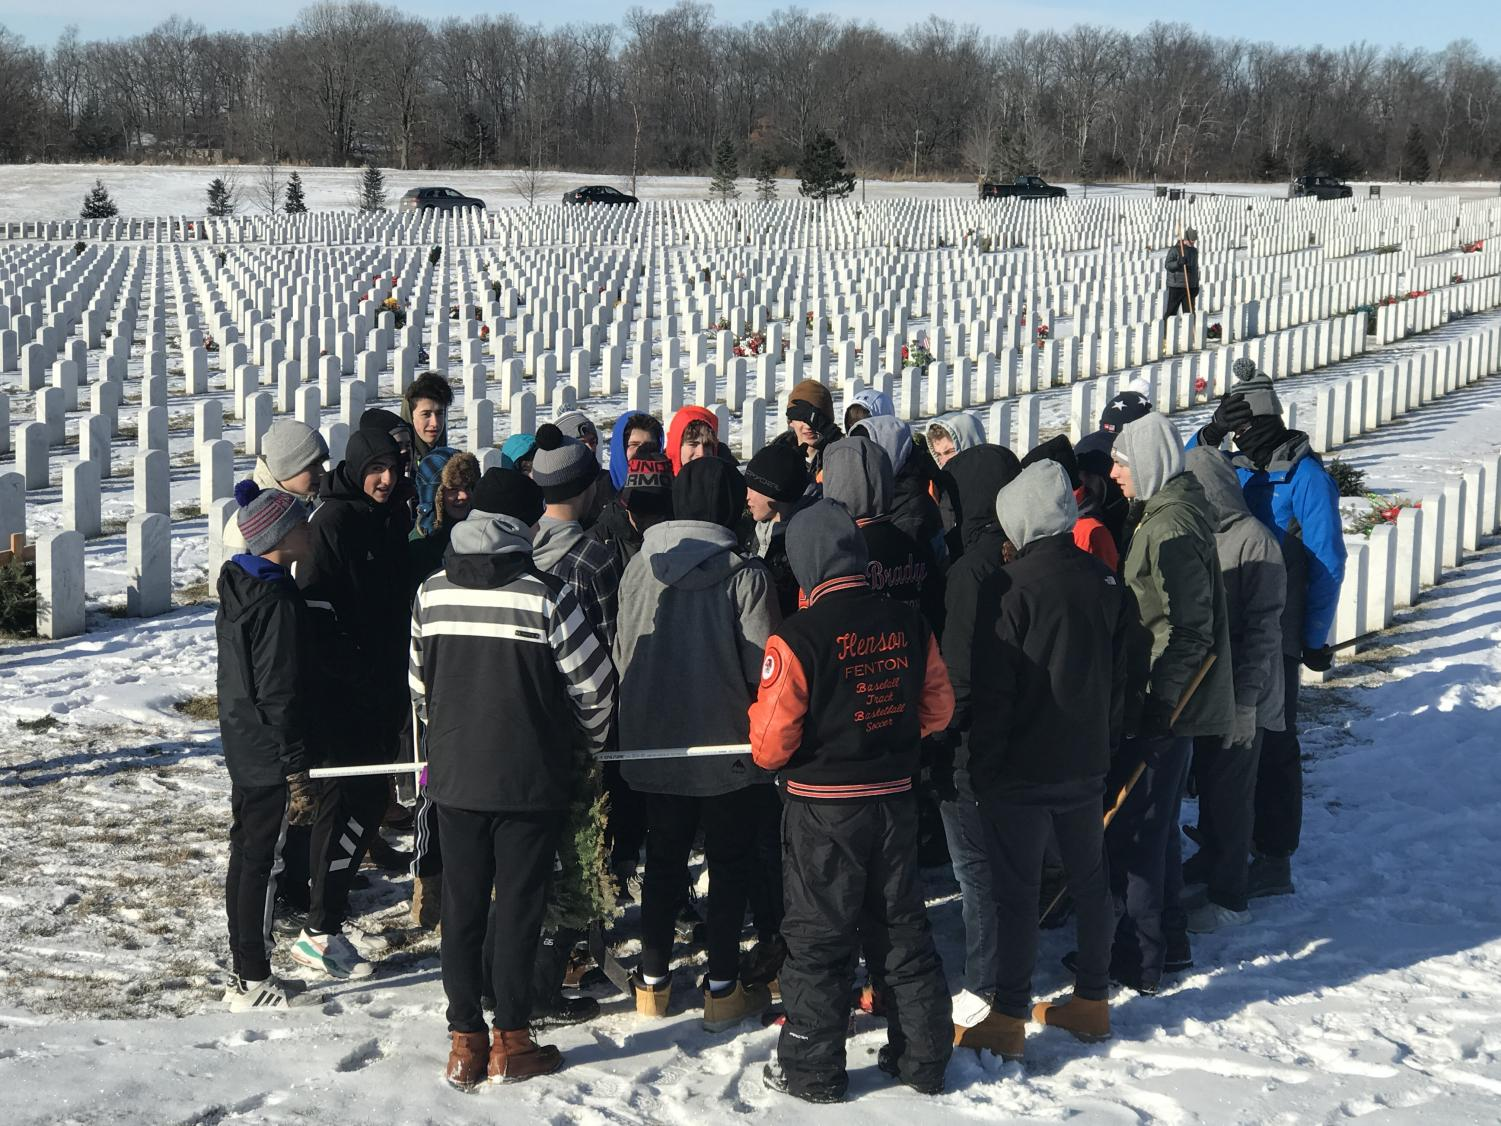 Students gather at the National Cemetery on Jan. 26. Junior and Senior boys took down the wreaths that were laid on the graves earlier in the season.